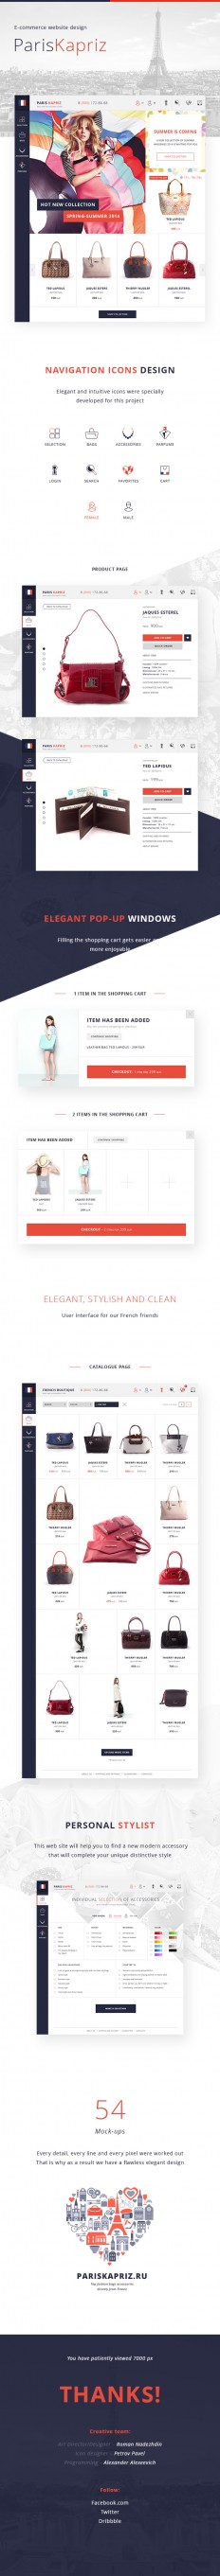 ParisKapriz - eCommerce website, Icon design on